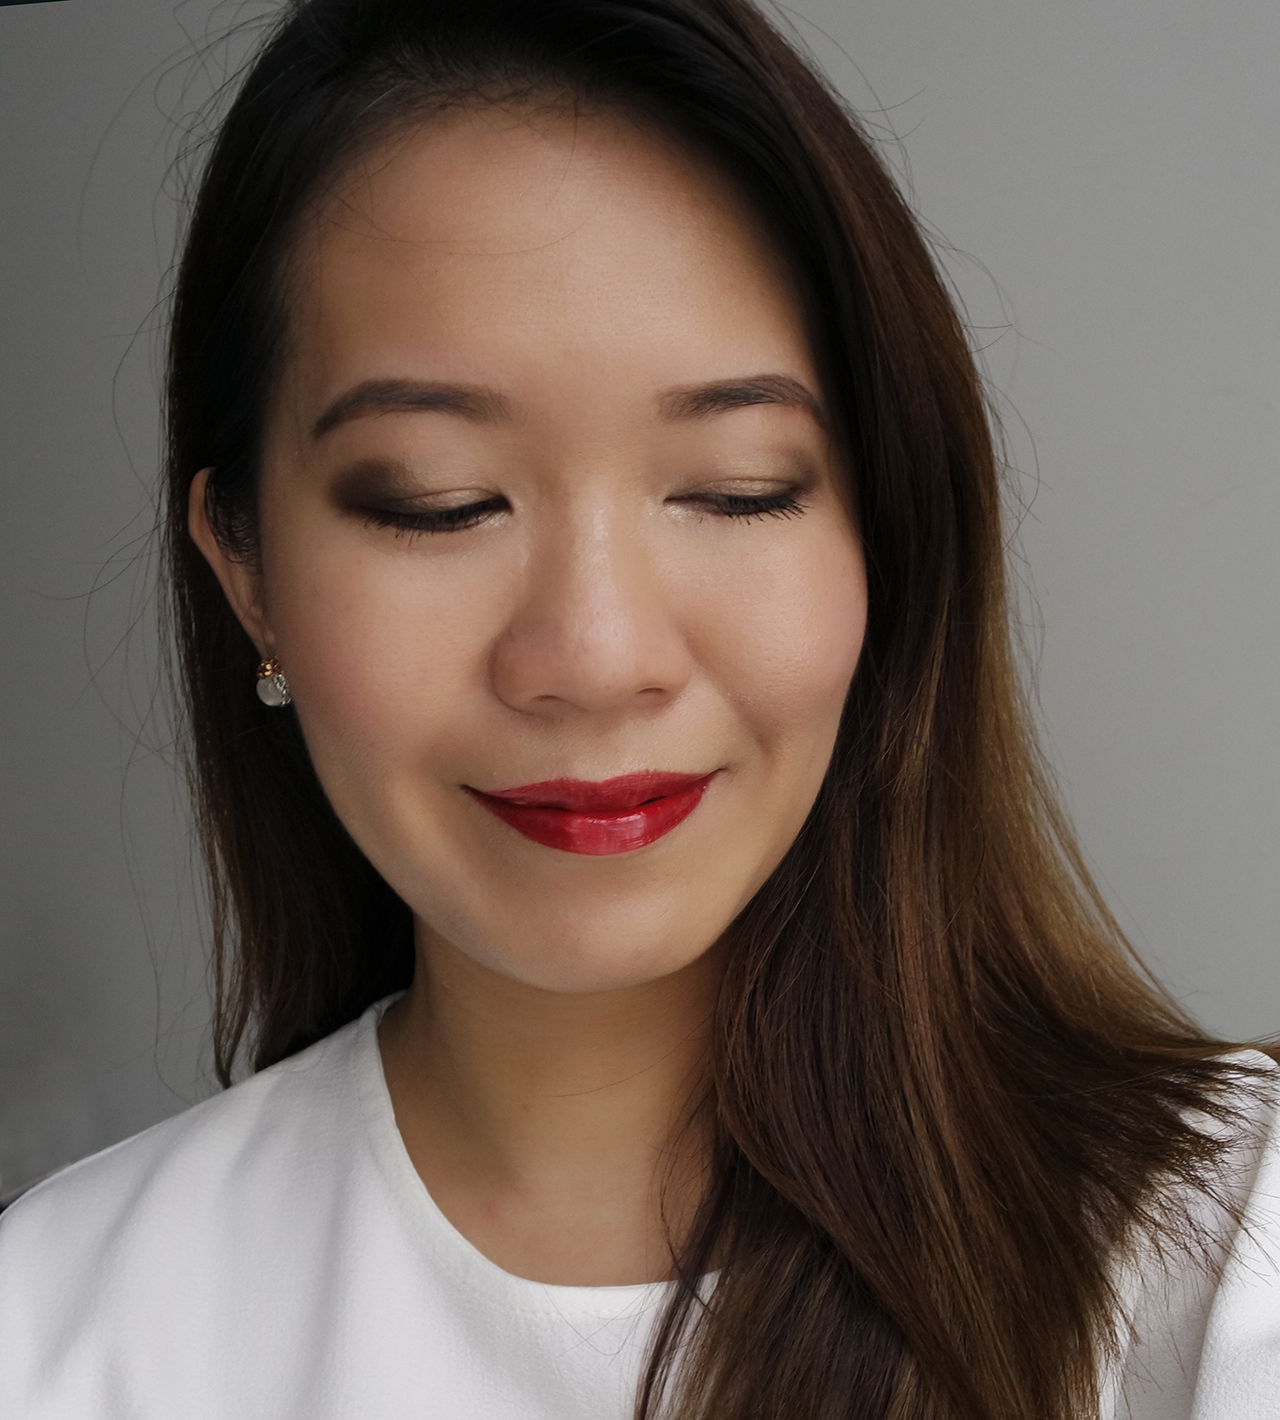 Dior 5 Couleur Palette 557 Focus makeup look